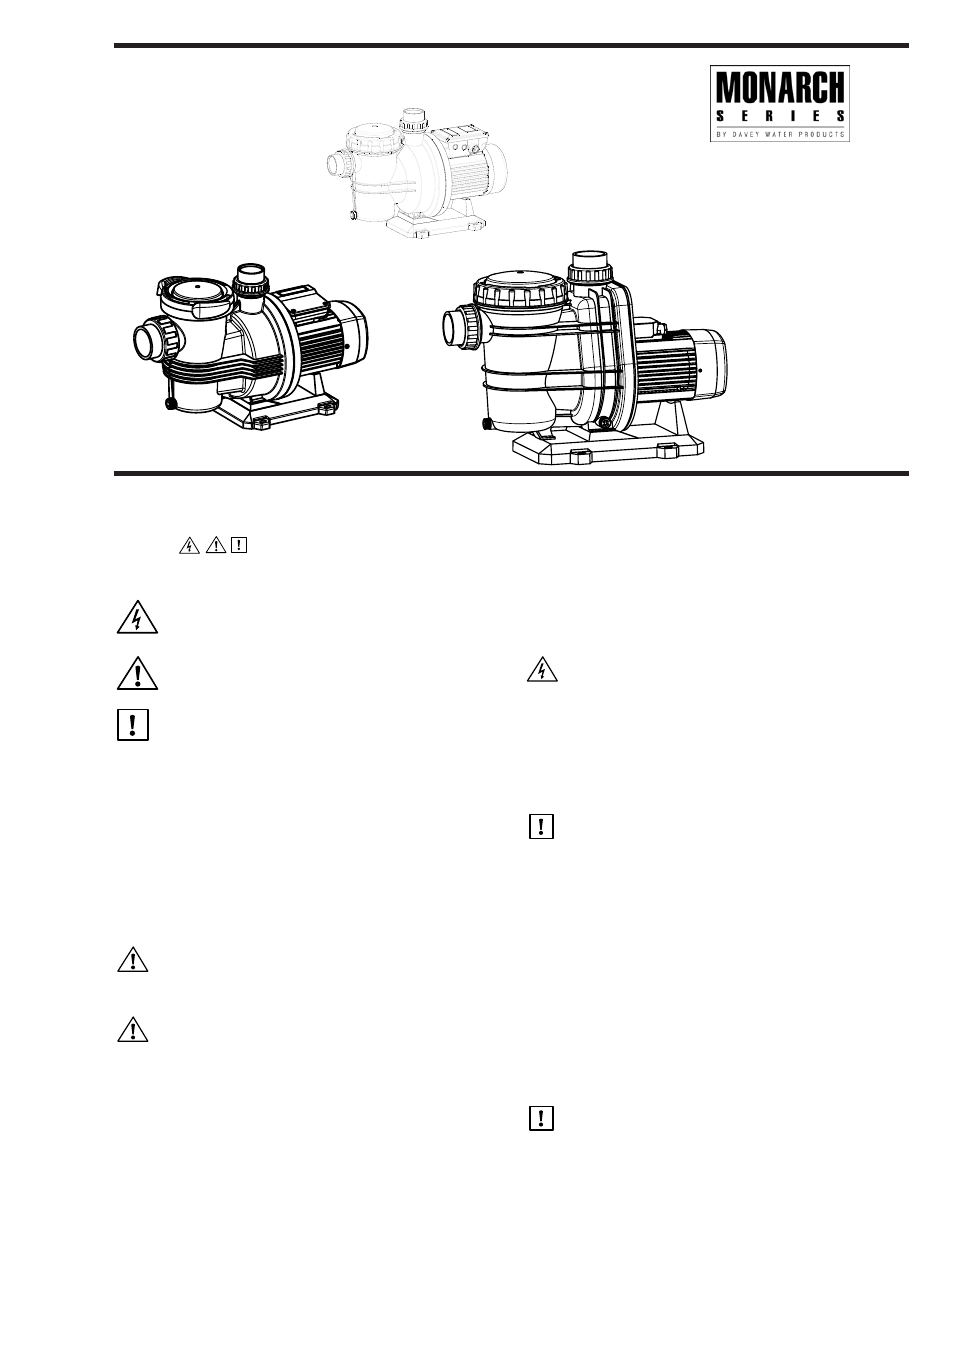 Davey TYPHOON T-Series Swimming Pool Pumps User Manual | 4 pages | Also  for: TYPHOON C-Series Swimming Pool Pumps, WHISPER Series Swimming Pool  Pumps